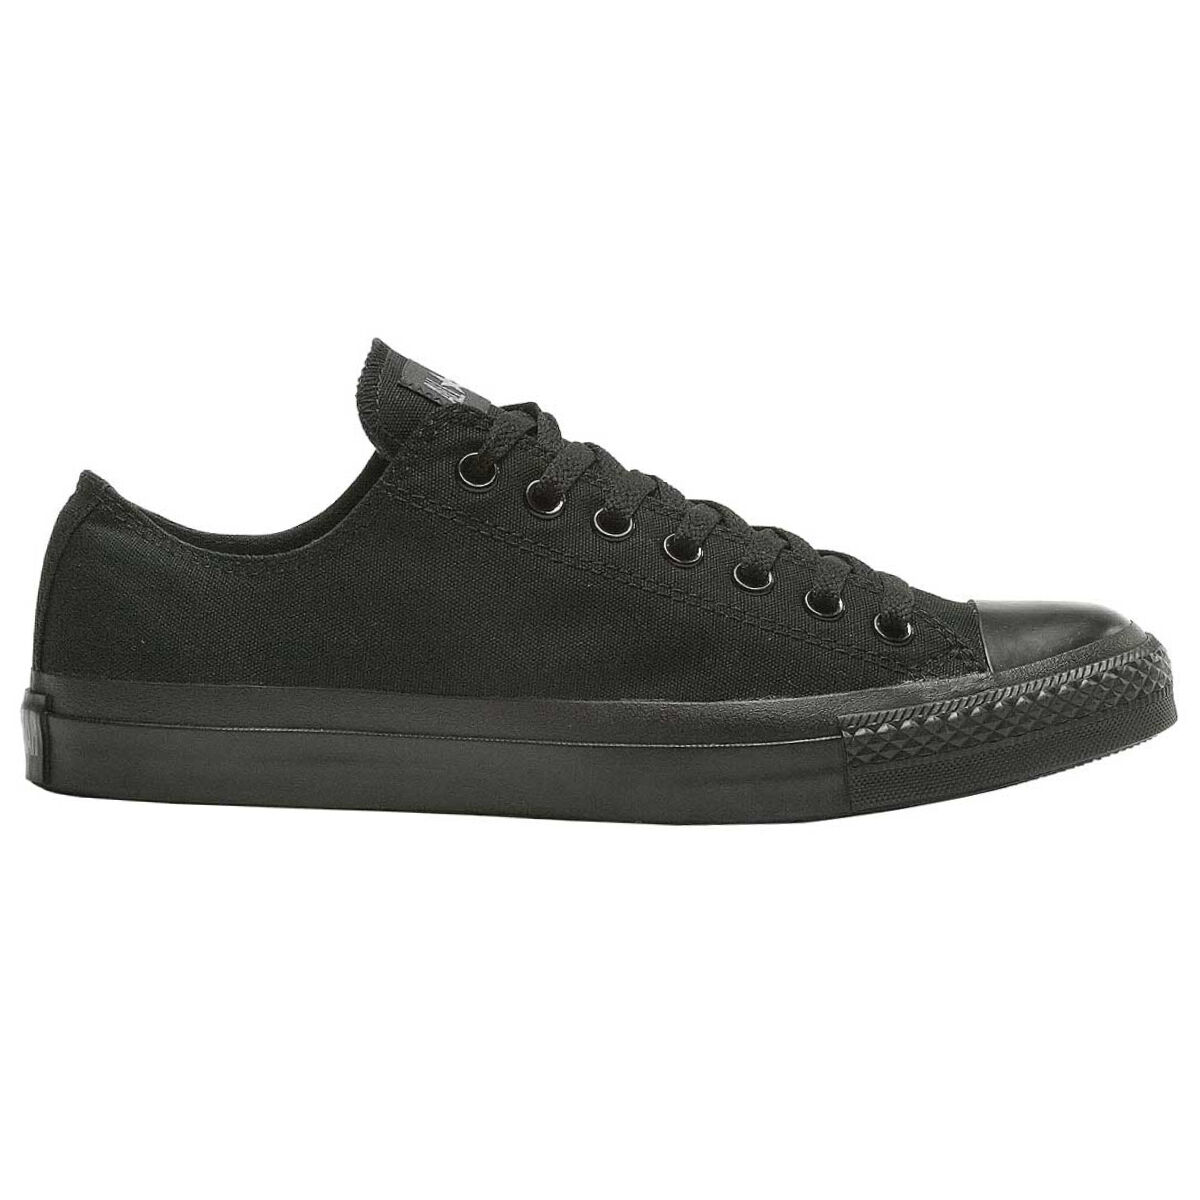 Converse Chuck Taylor All Star Low Casual Shoes Black White US Mens 3 Womens 5